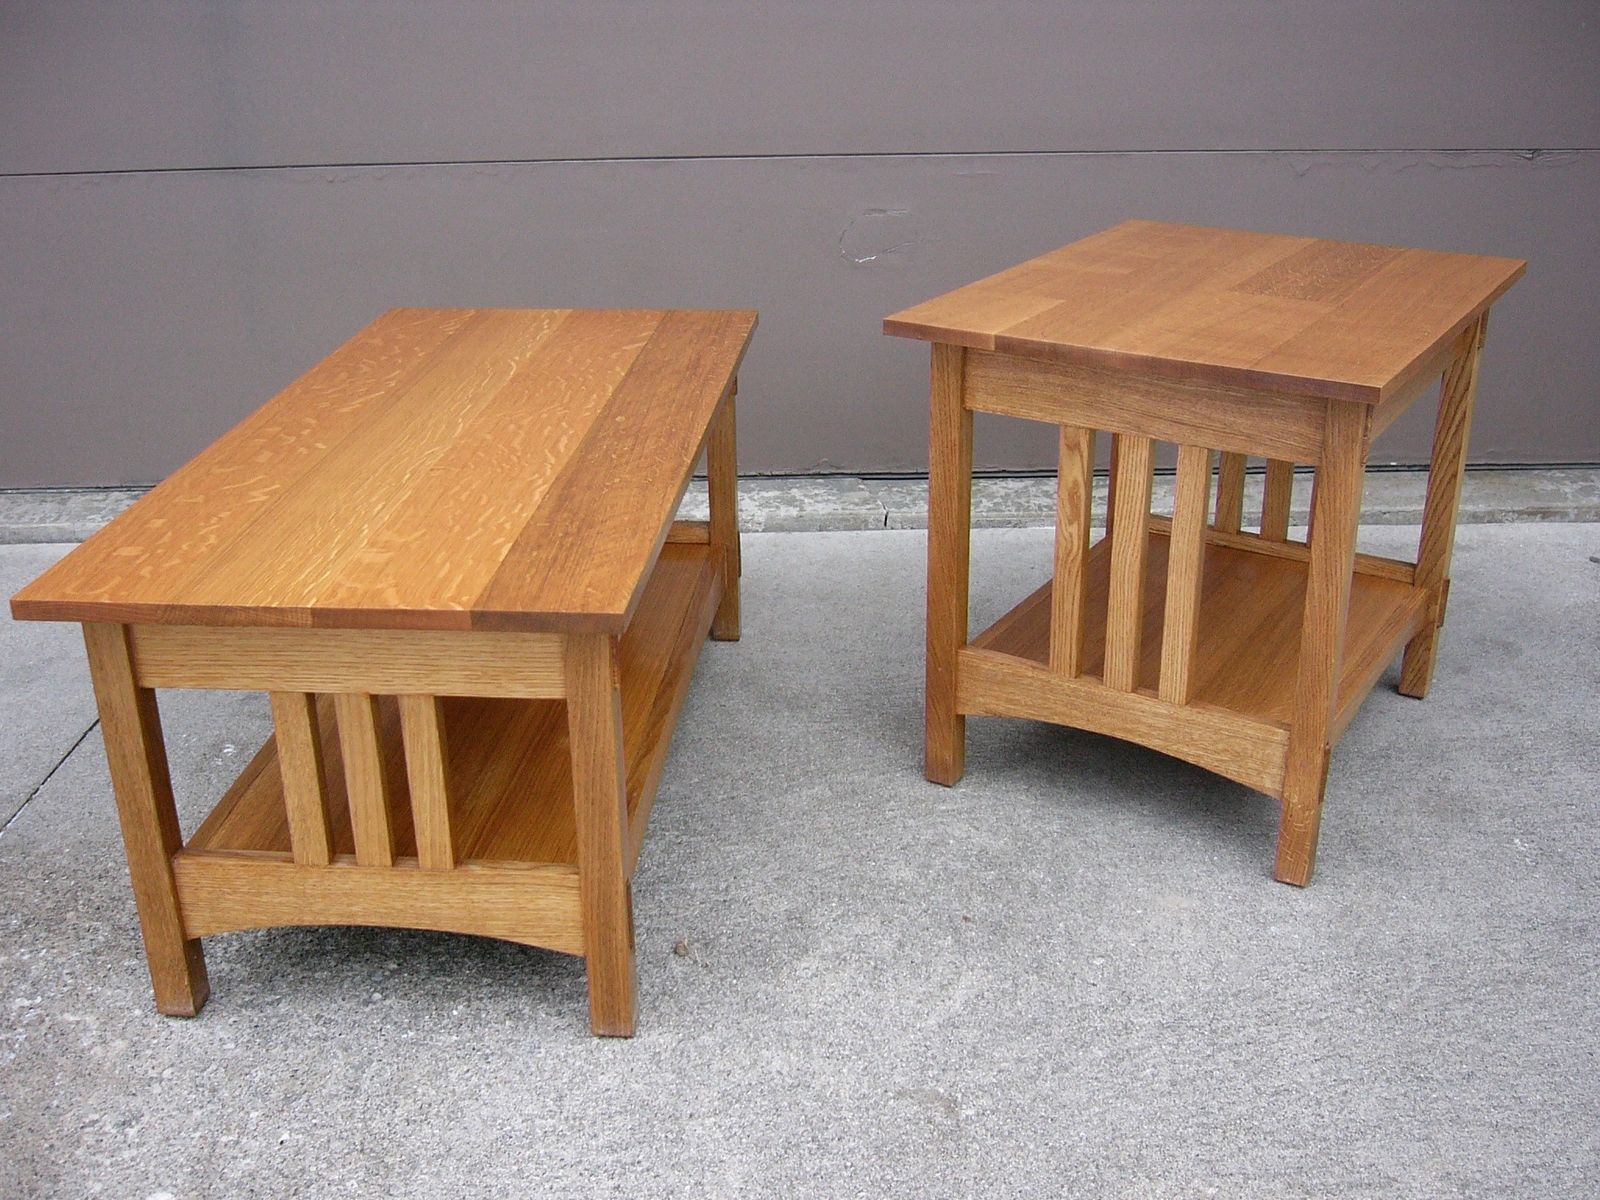 probably outrageous nice oak coffee and end table sets mira handmade quartersawn mission style custom made tall skinny tables small oval side office furniture slim glass floor